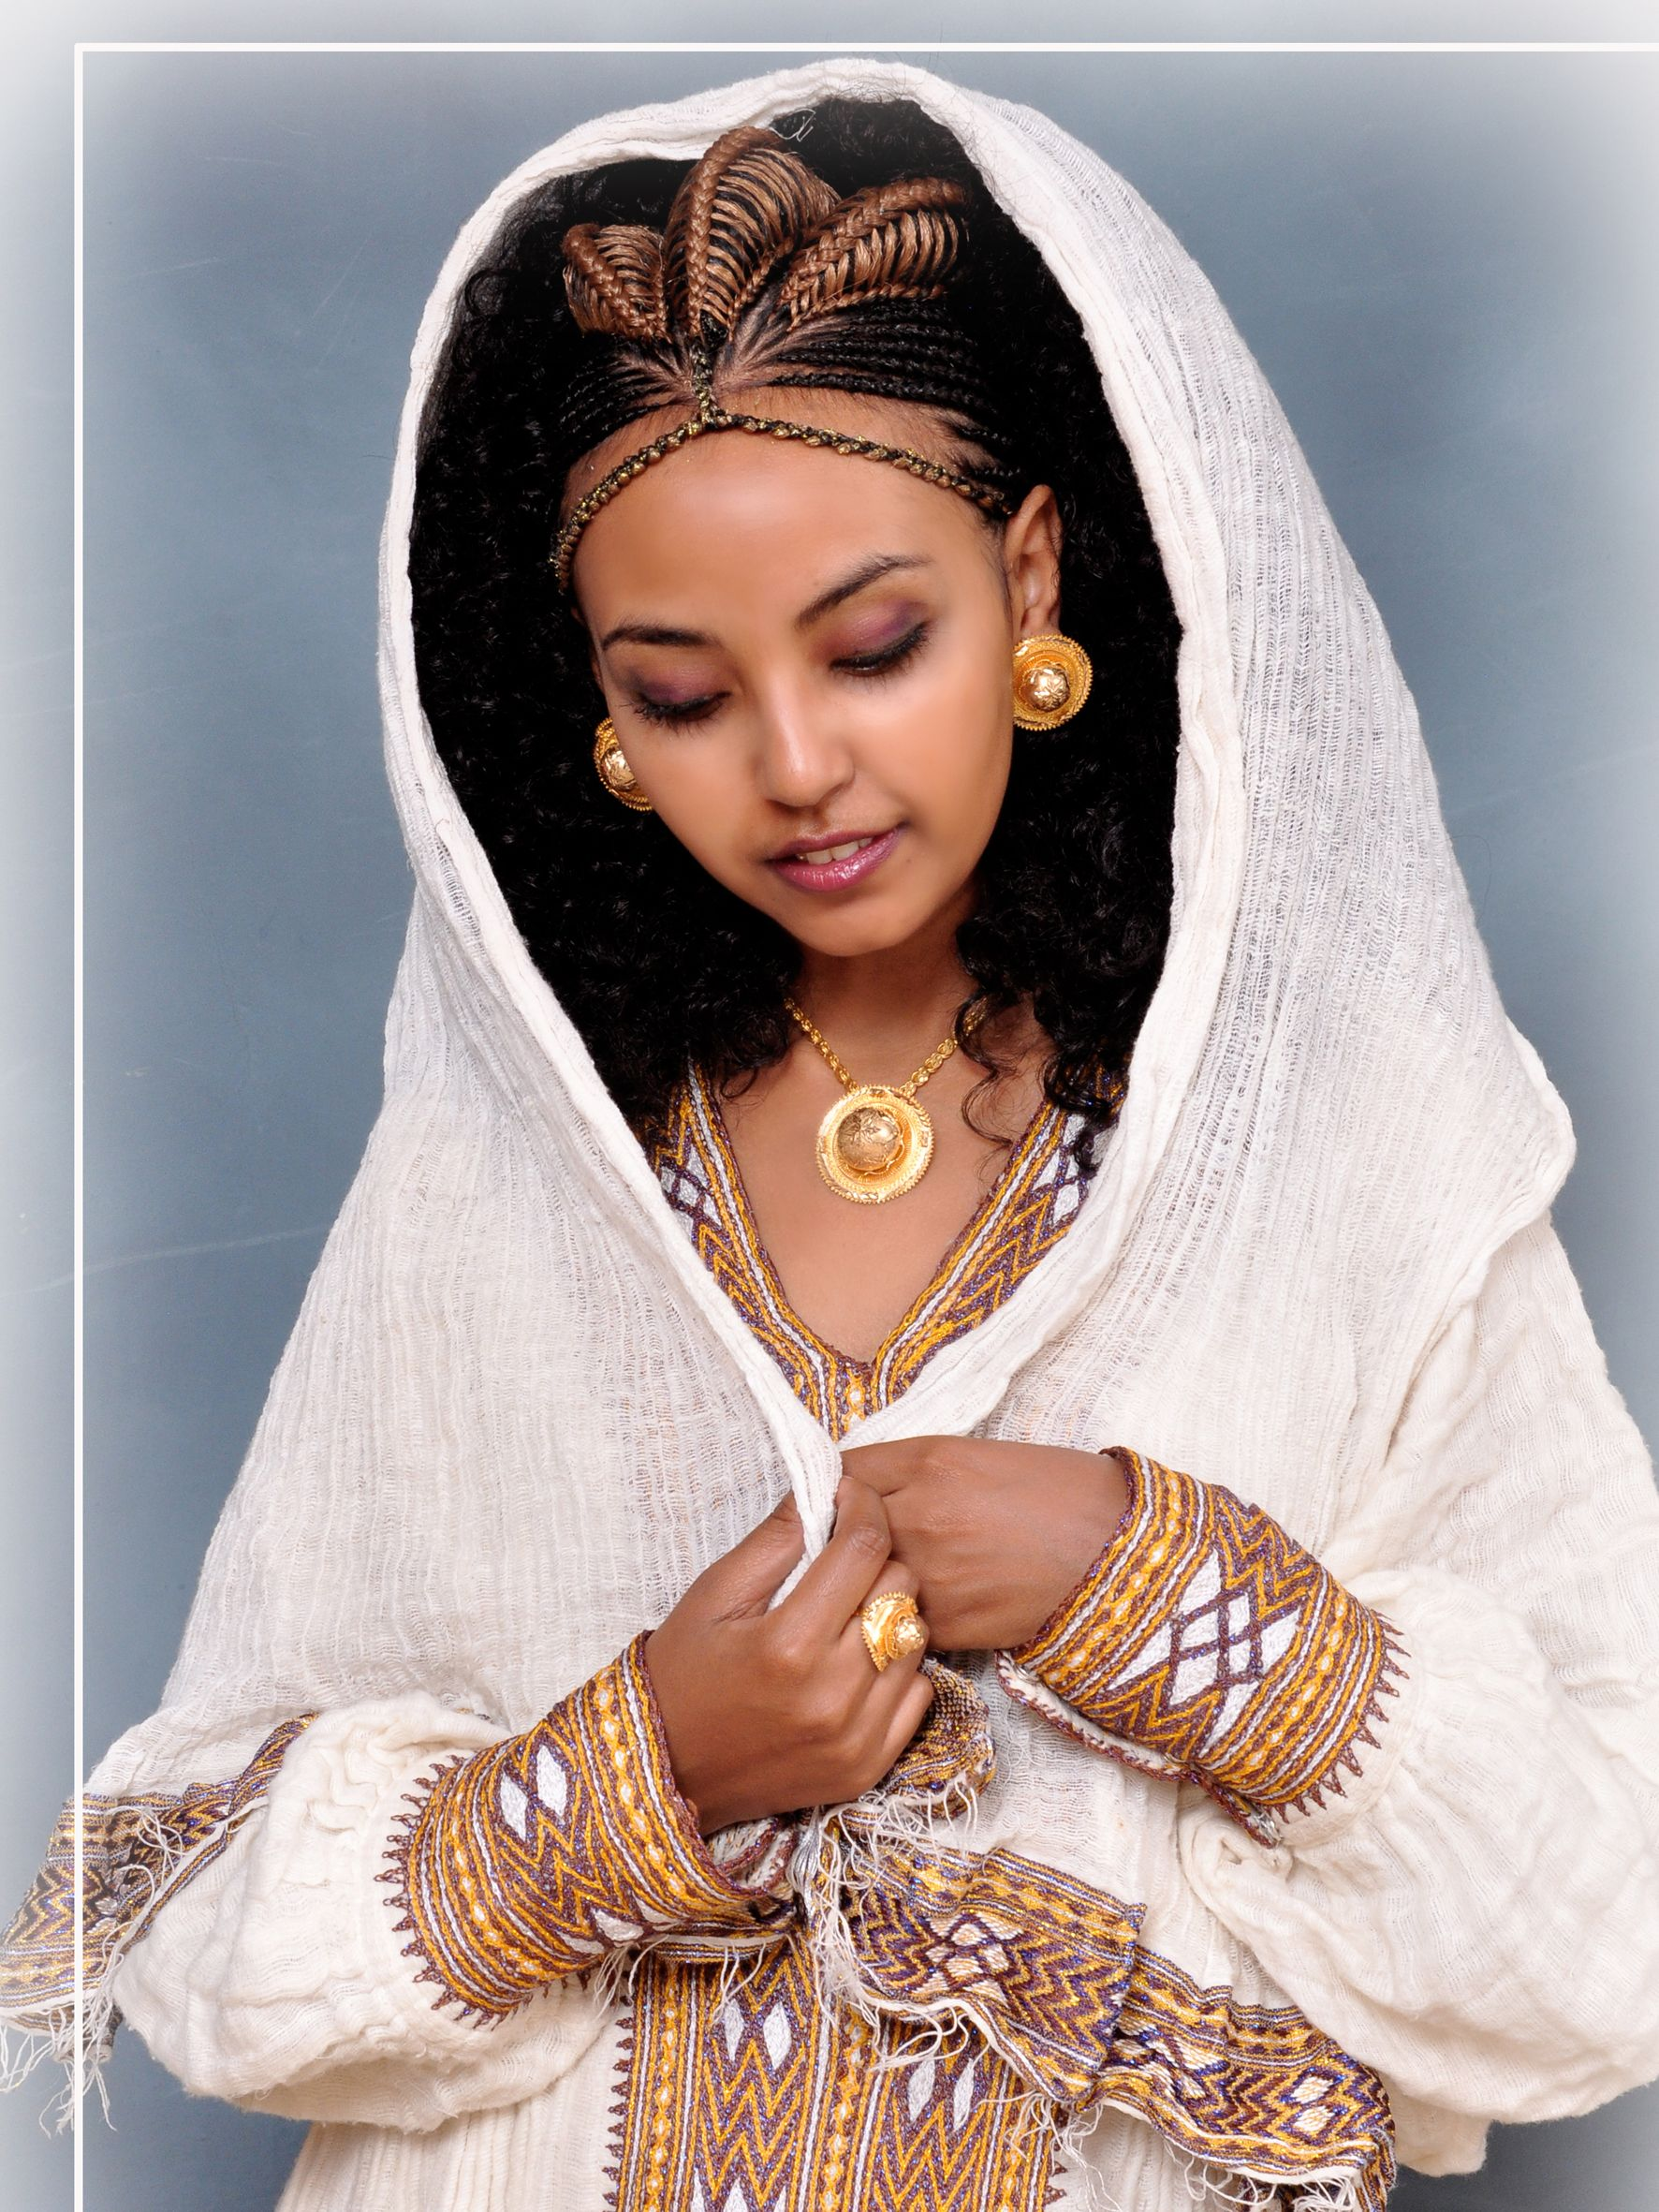 habesha hair style pin by ruhama chernet on habesha 4500